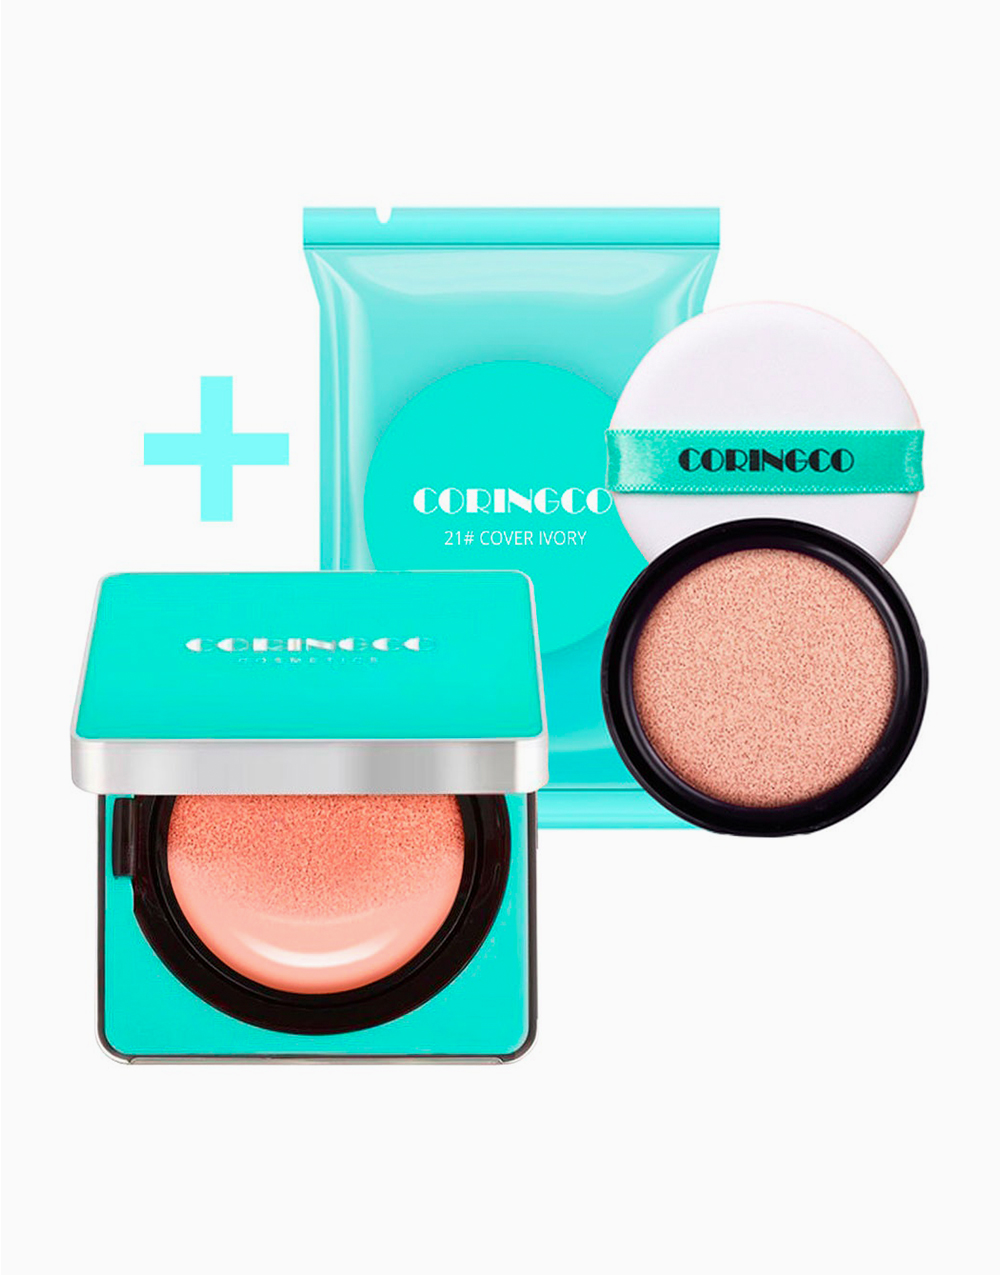 Mint Blossom Cover BB Cushion SPF50+ PA+++ With Refill by Coringco | #21 Cover Ivory